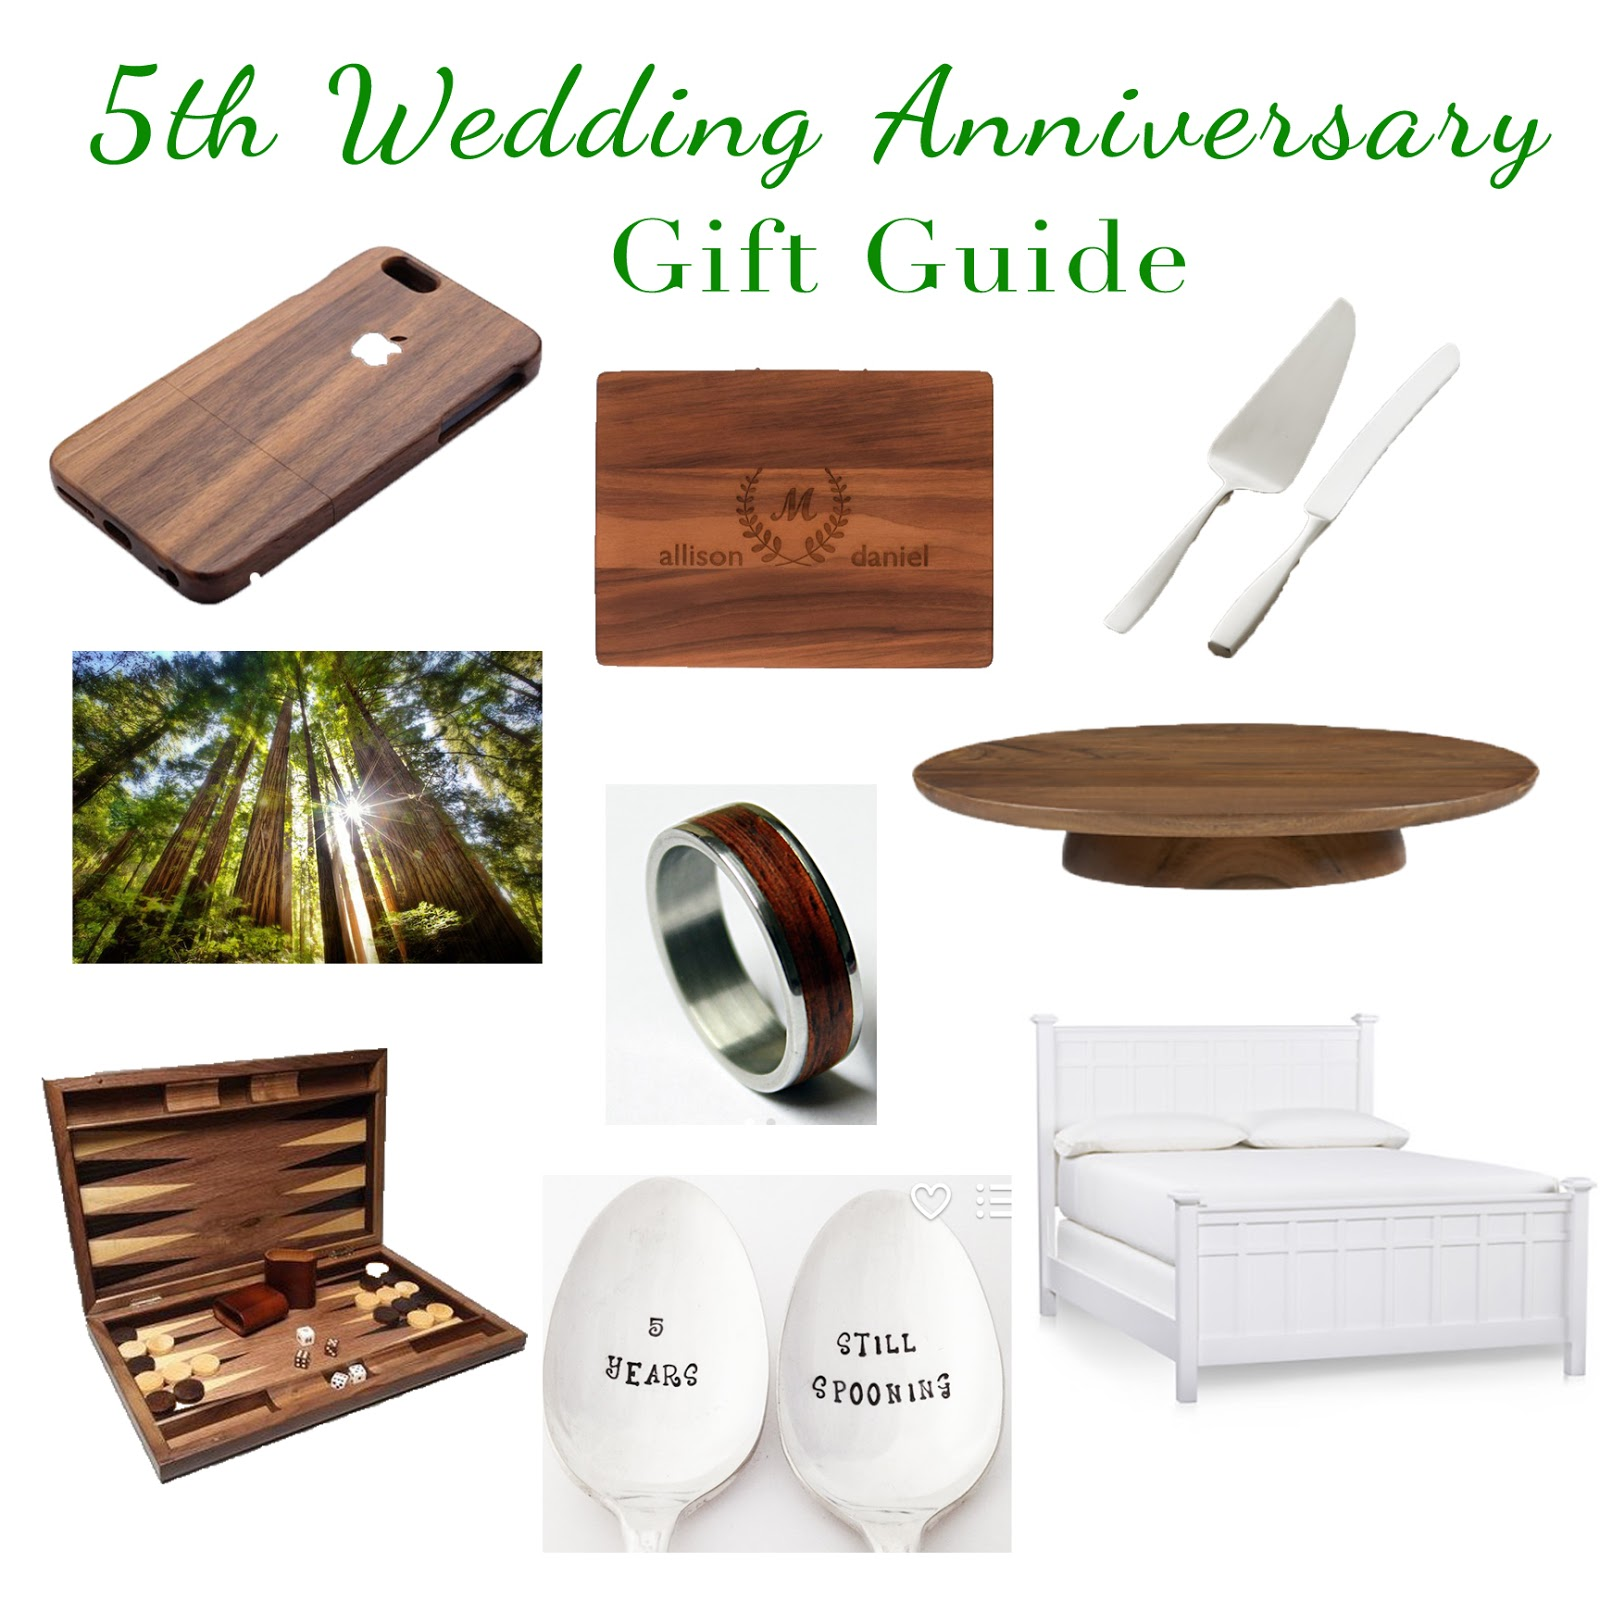 The adventure starts here 5th wedding anniversary gift ideas for Unique gift ideas for anniversary